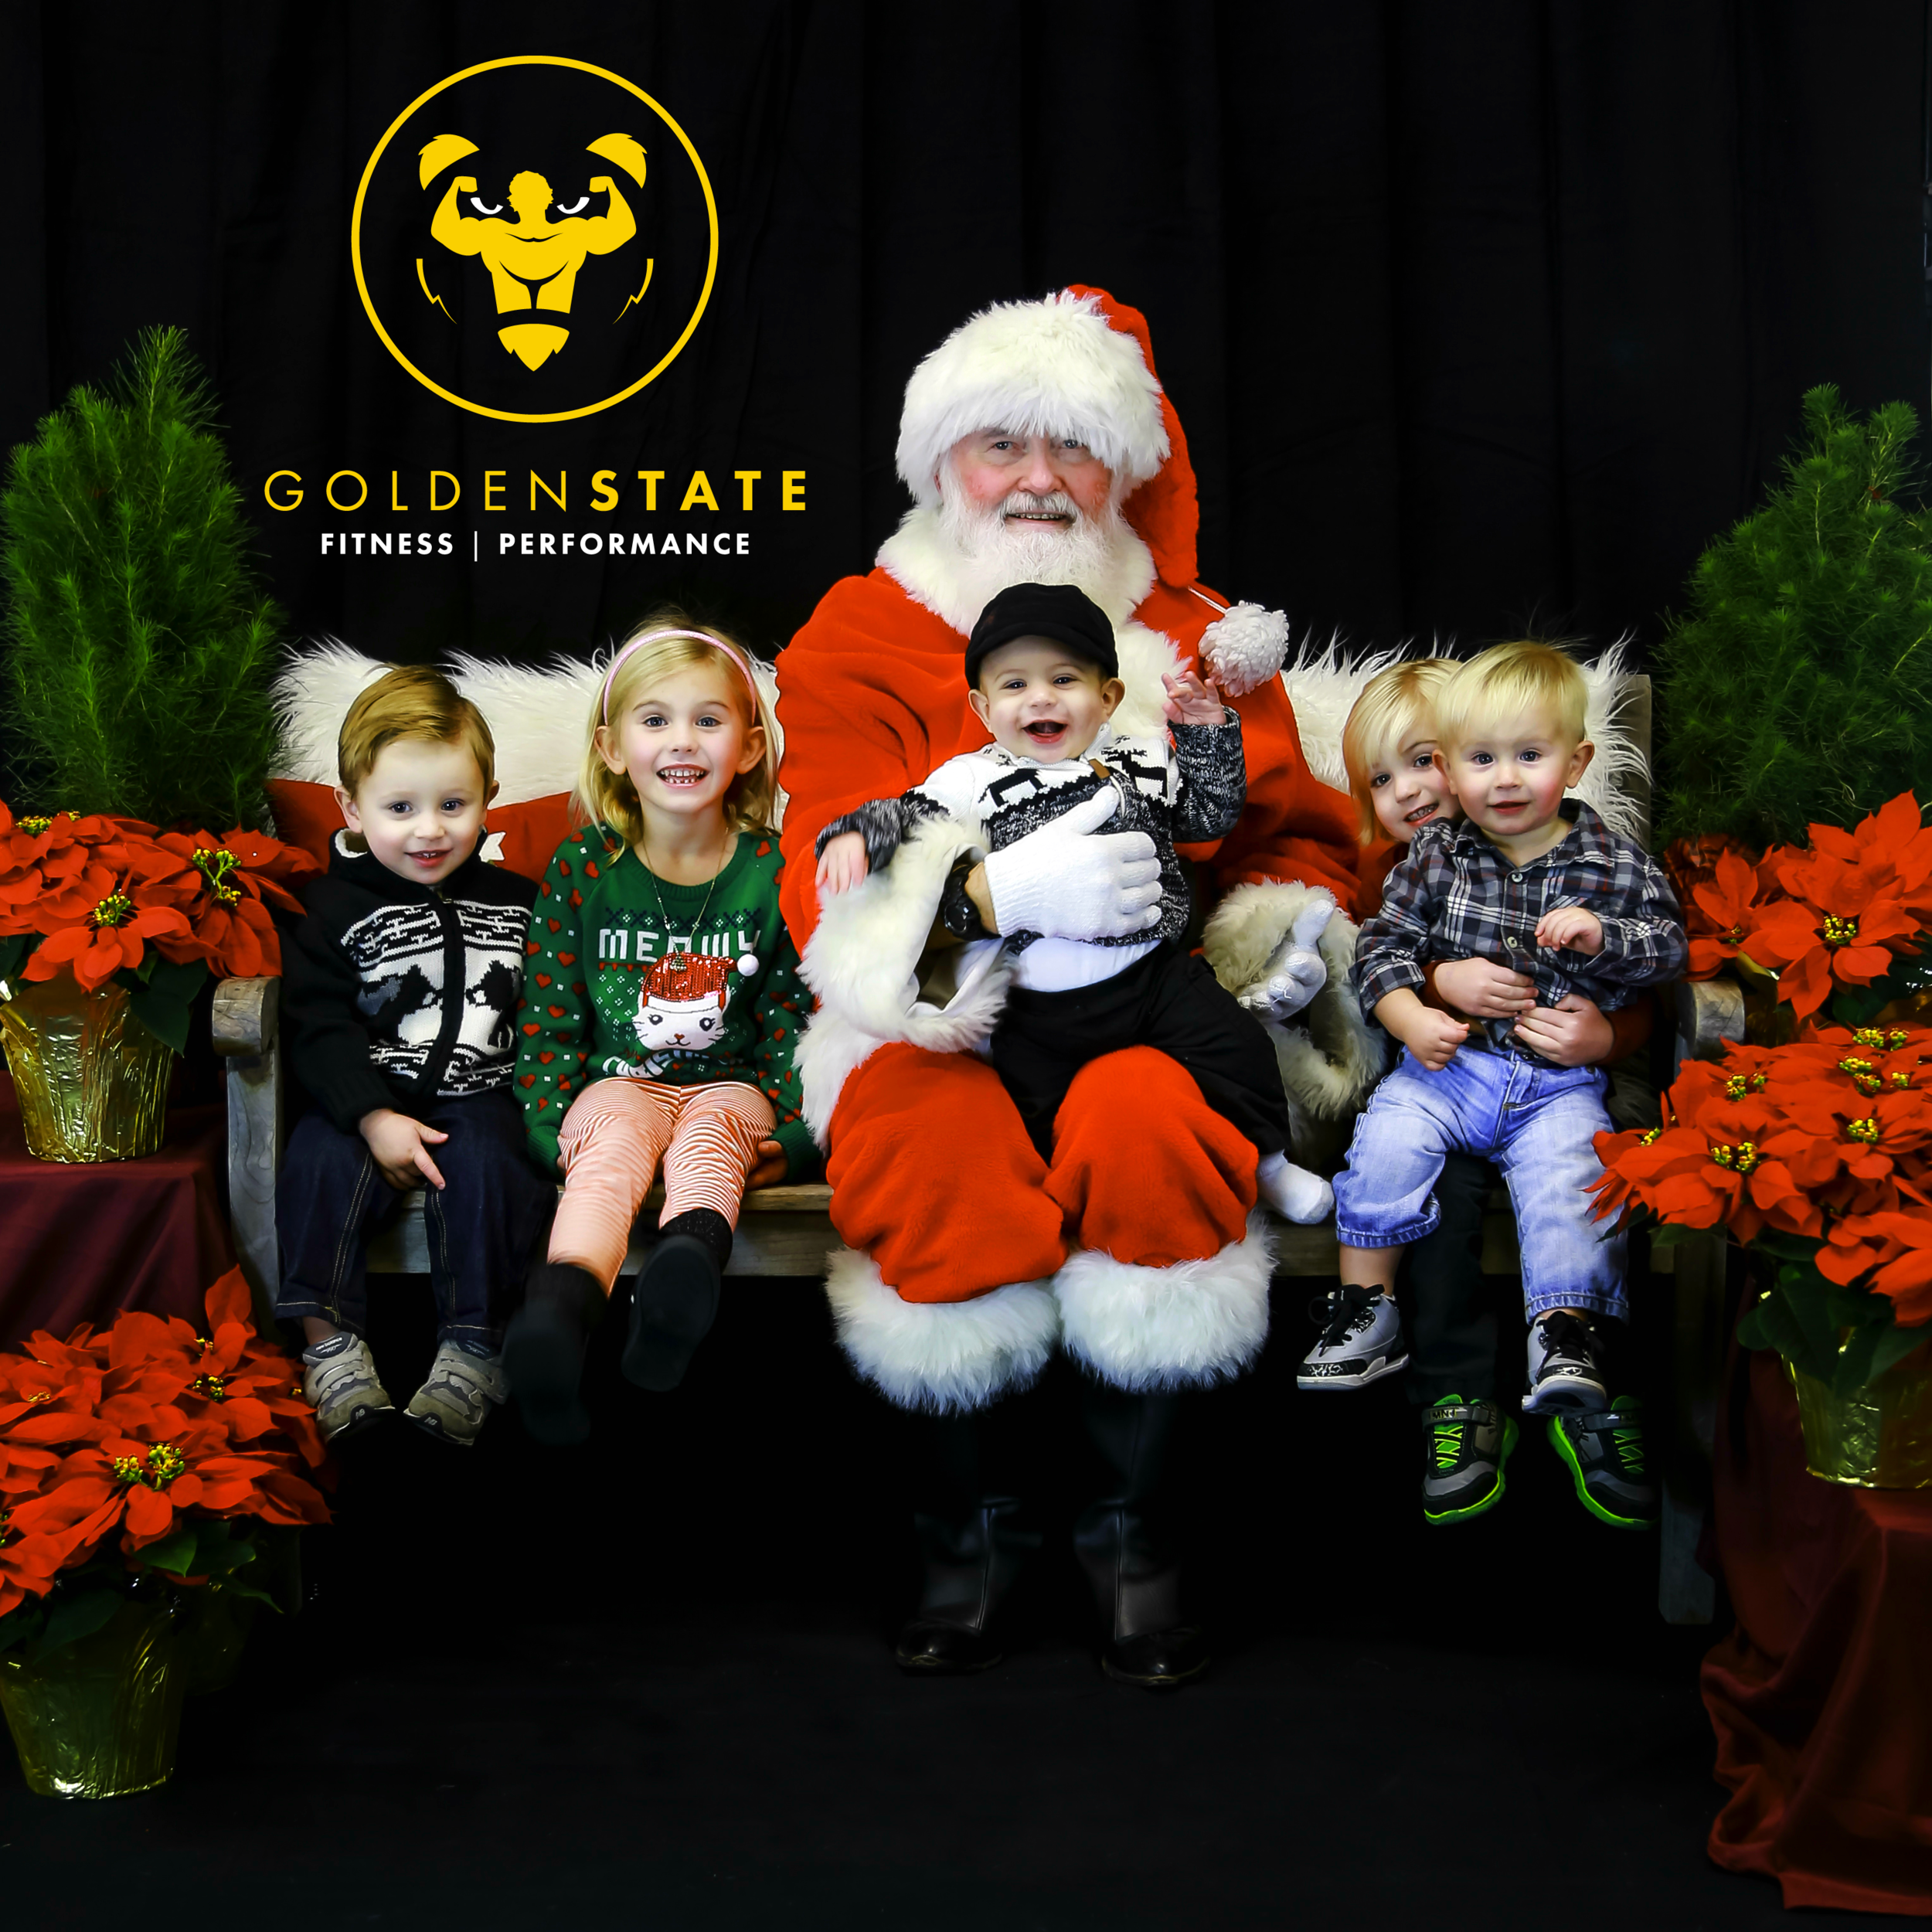 holiday_stroll_kids_pic_with_logo.png